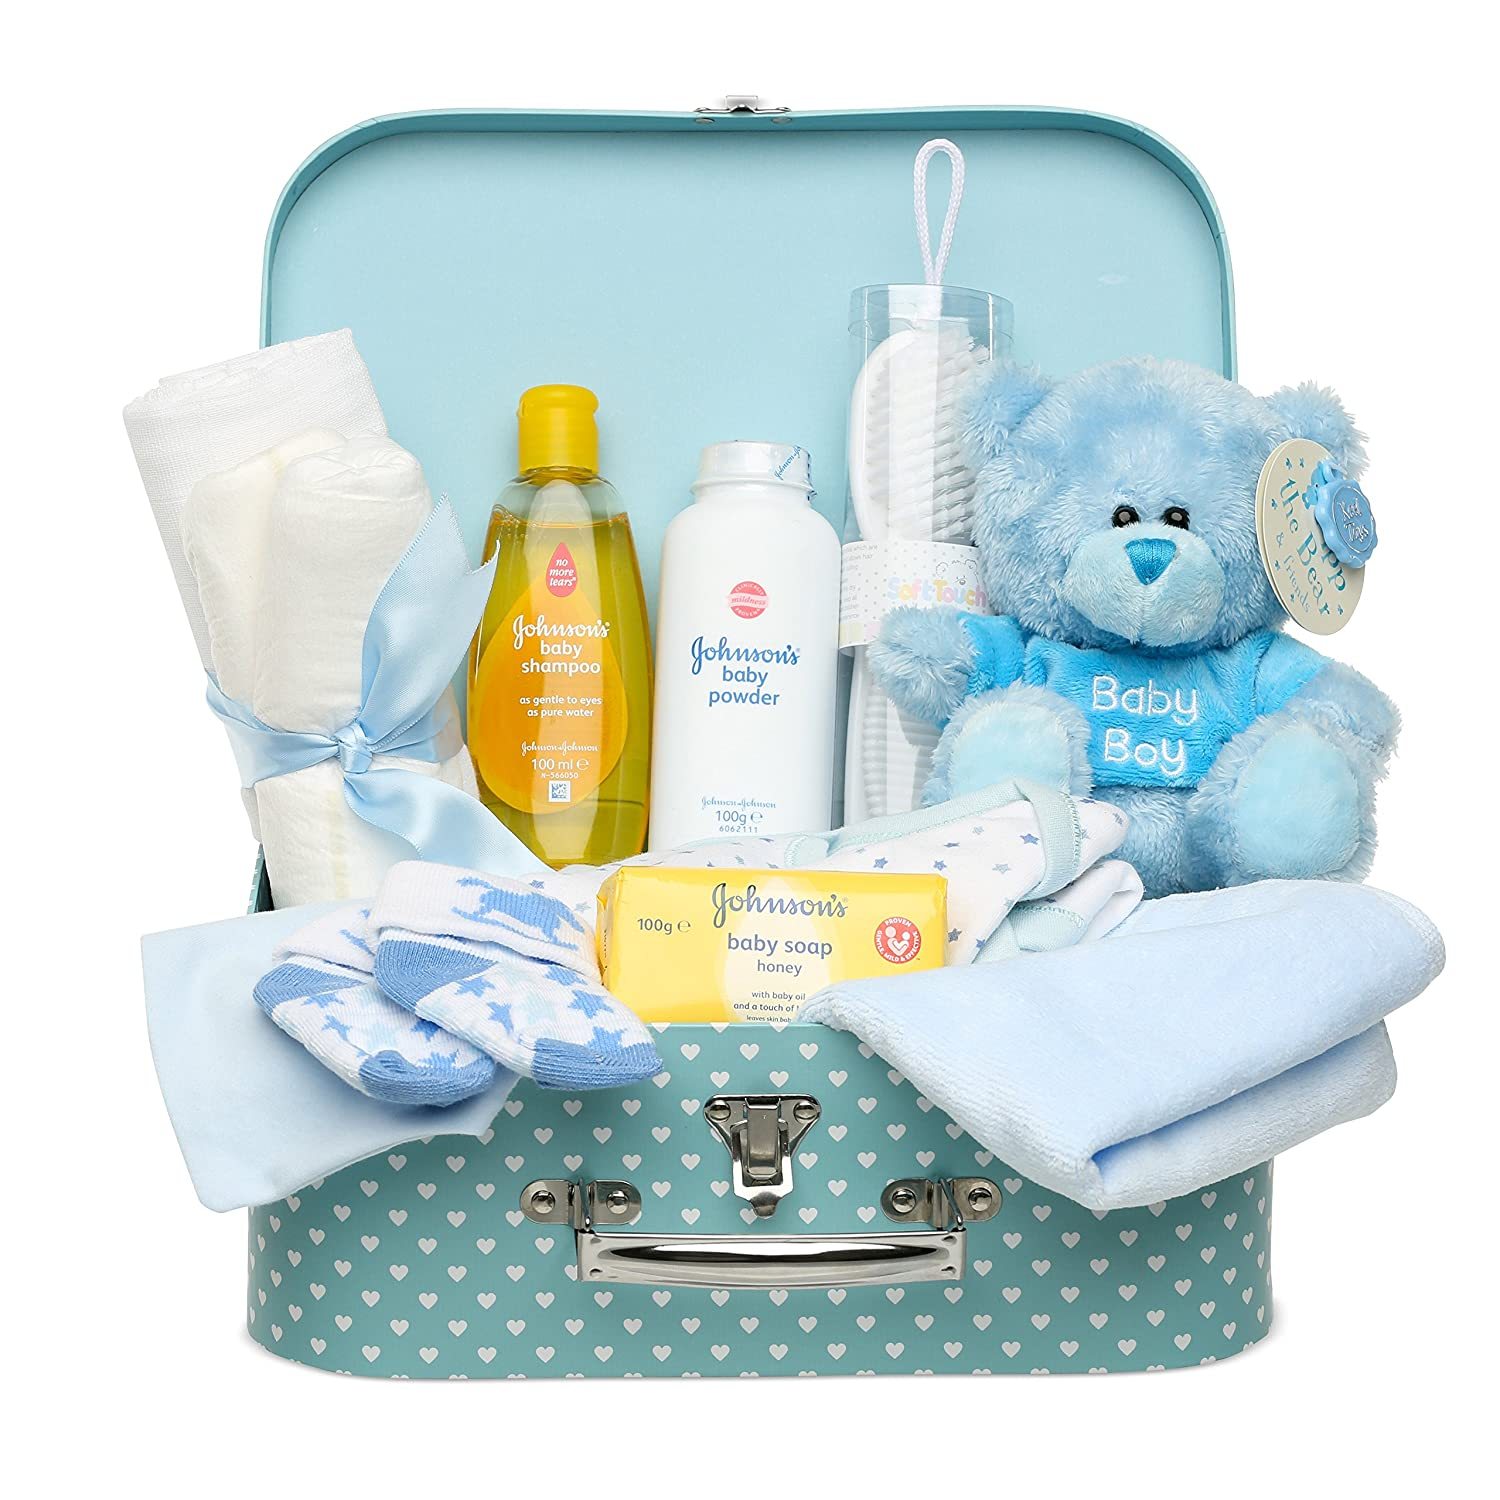 5ab4e713 Newborn Baby Gift Set - Keepsake Box in Blue with Baby Clothes, Teddy and  Gifts for a Baby Boy: Amazon.co.uk: Baby